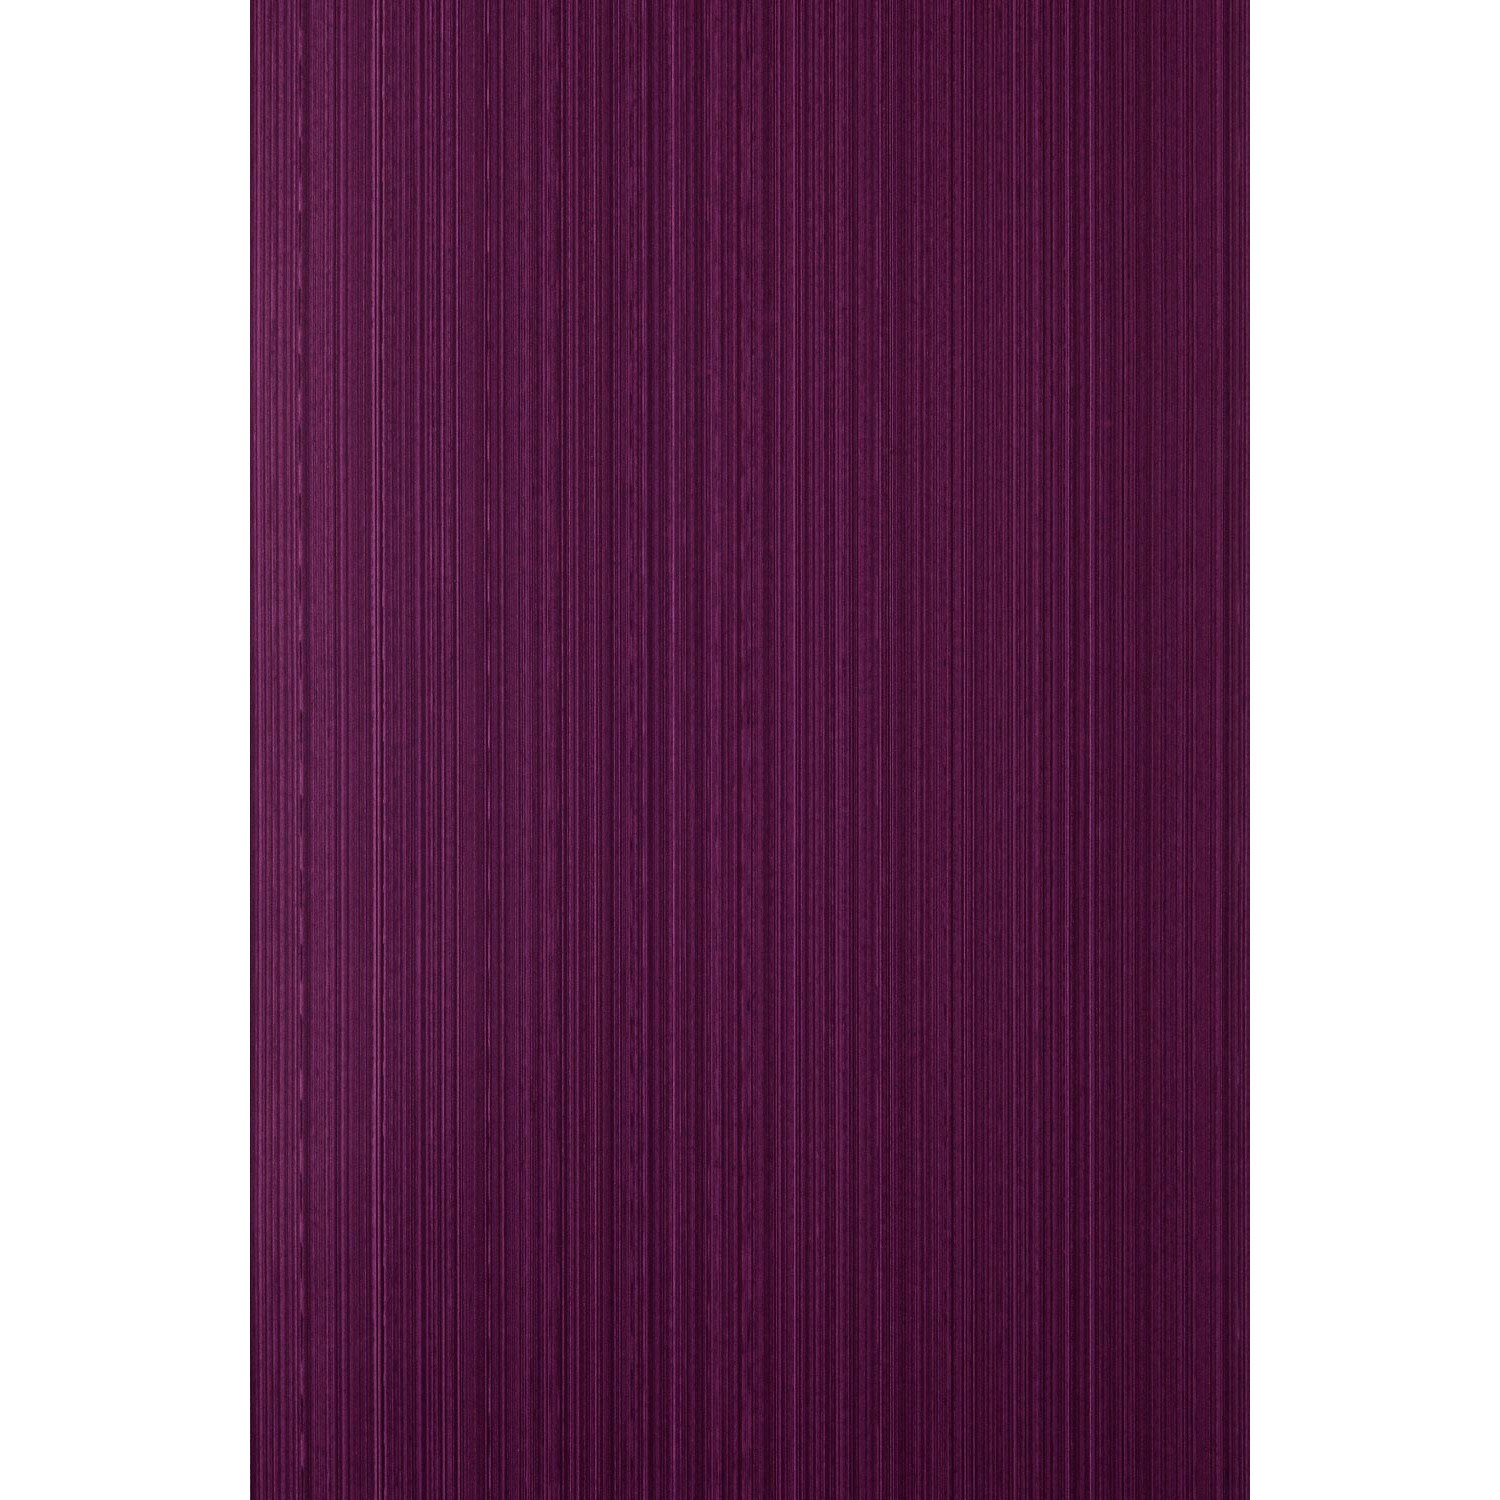 Farrow And Ball Pale Blue Bedroom: Farrow And Ball Dragged Wallpaper 12-92, Purple